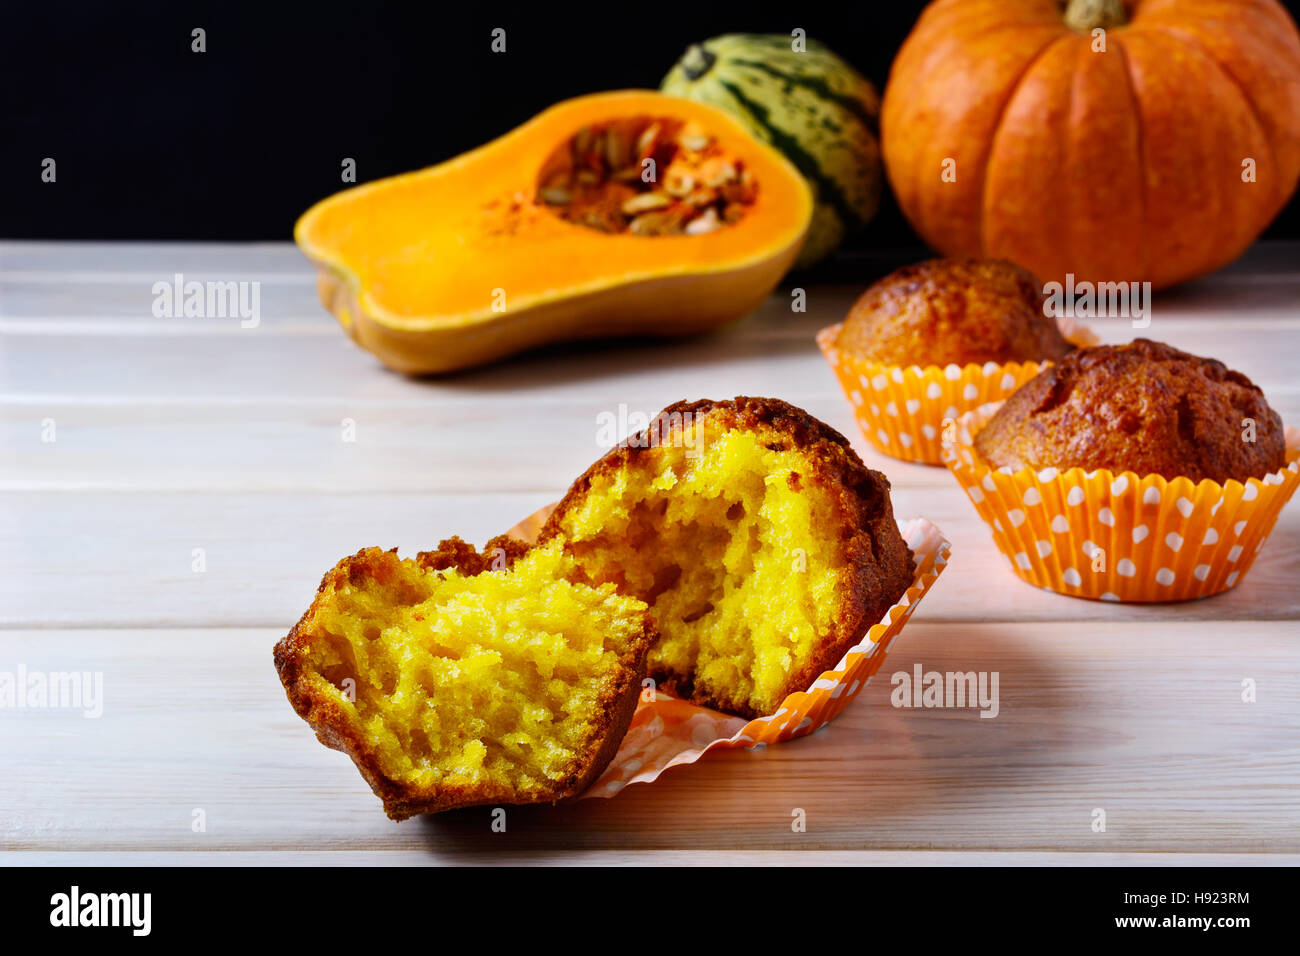 Healthy spiced butternut squash muffins. Fall seasonal vegetable food. Thanksgiving homemade sweet pastry. Stock Photo